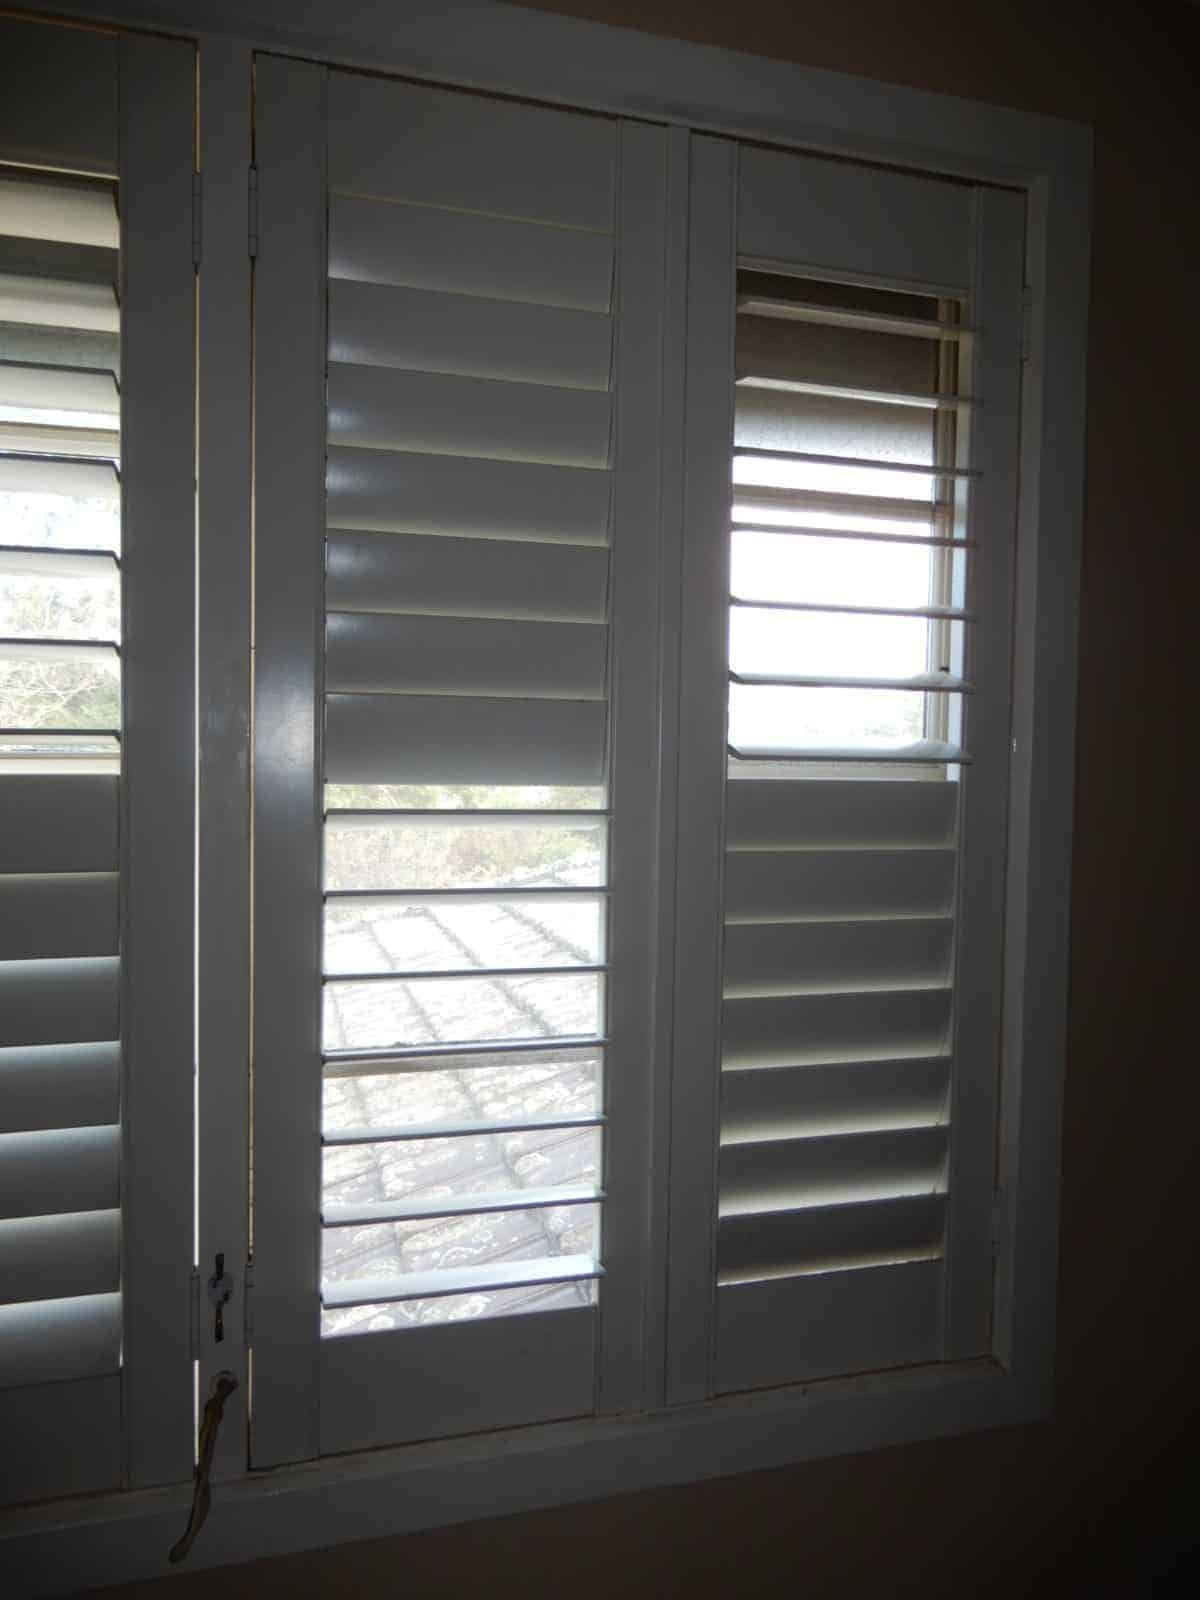 Plantation Shutters Off White Centre Opening 805w X1300h Now Removed 6i